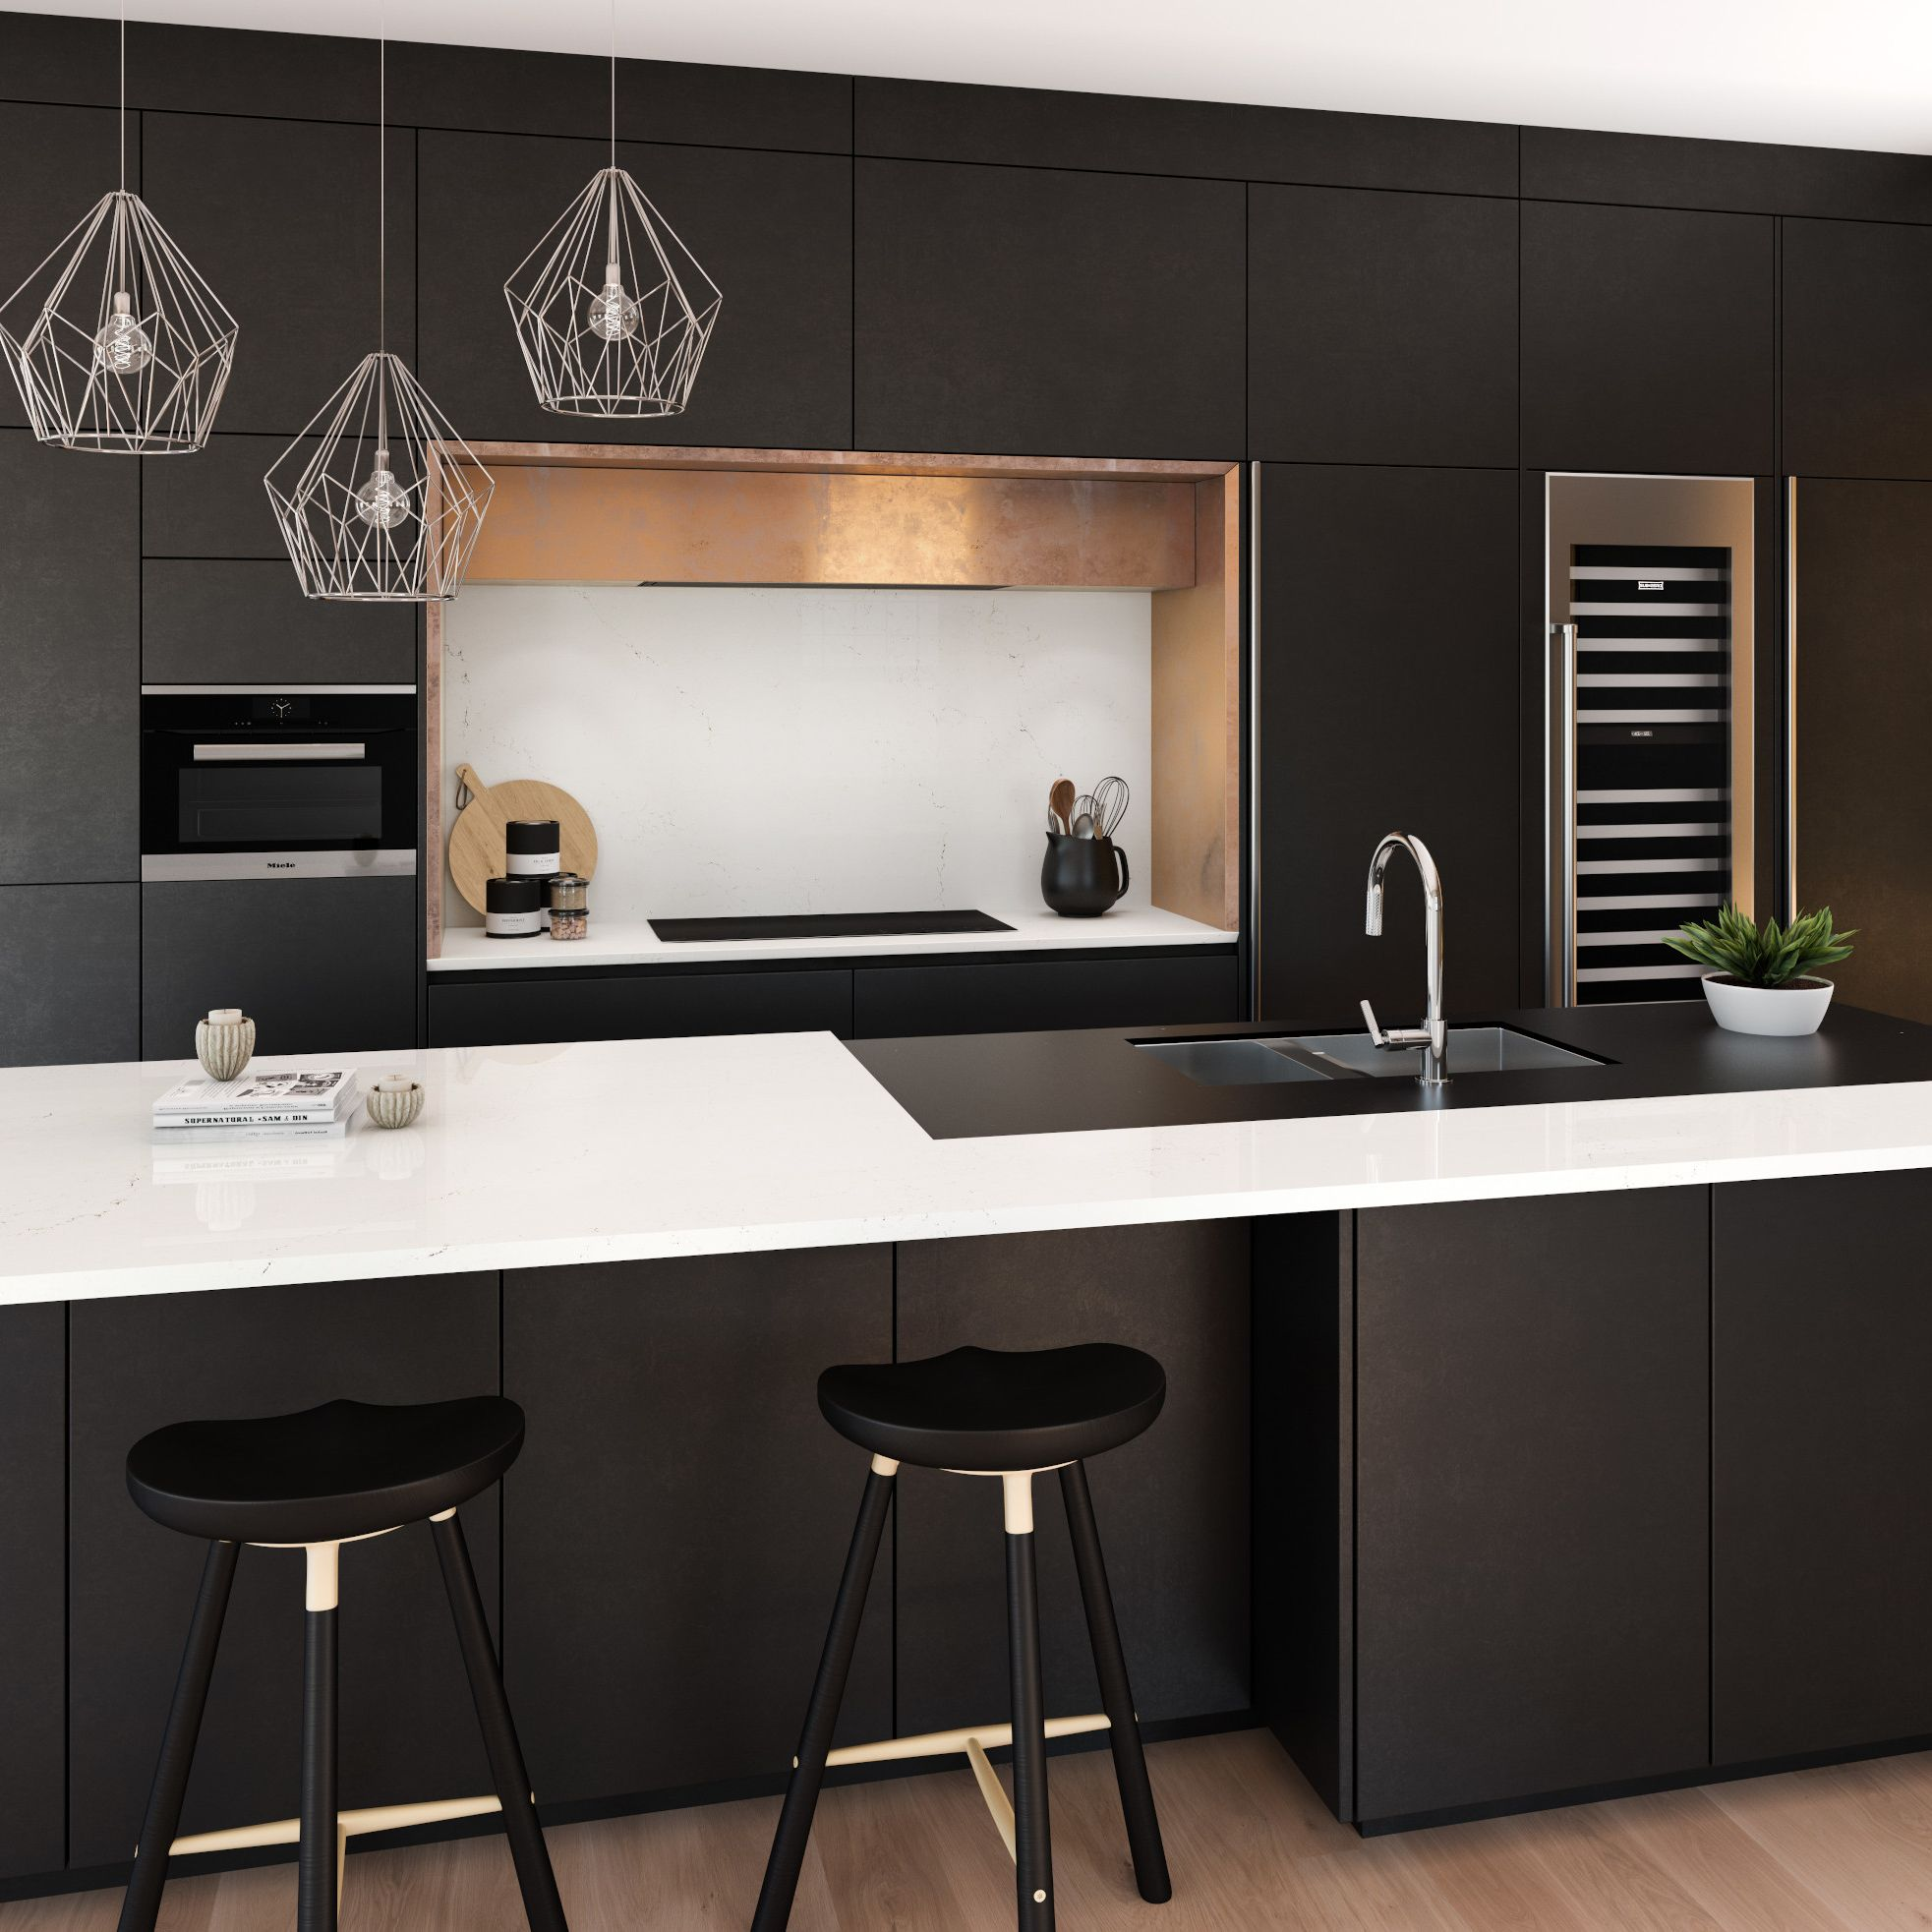 A picture containing wall, indoor, ceiling, kitchen appliance  Description automatically generated